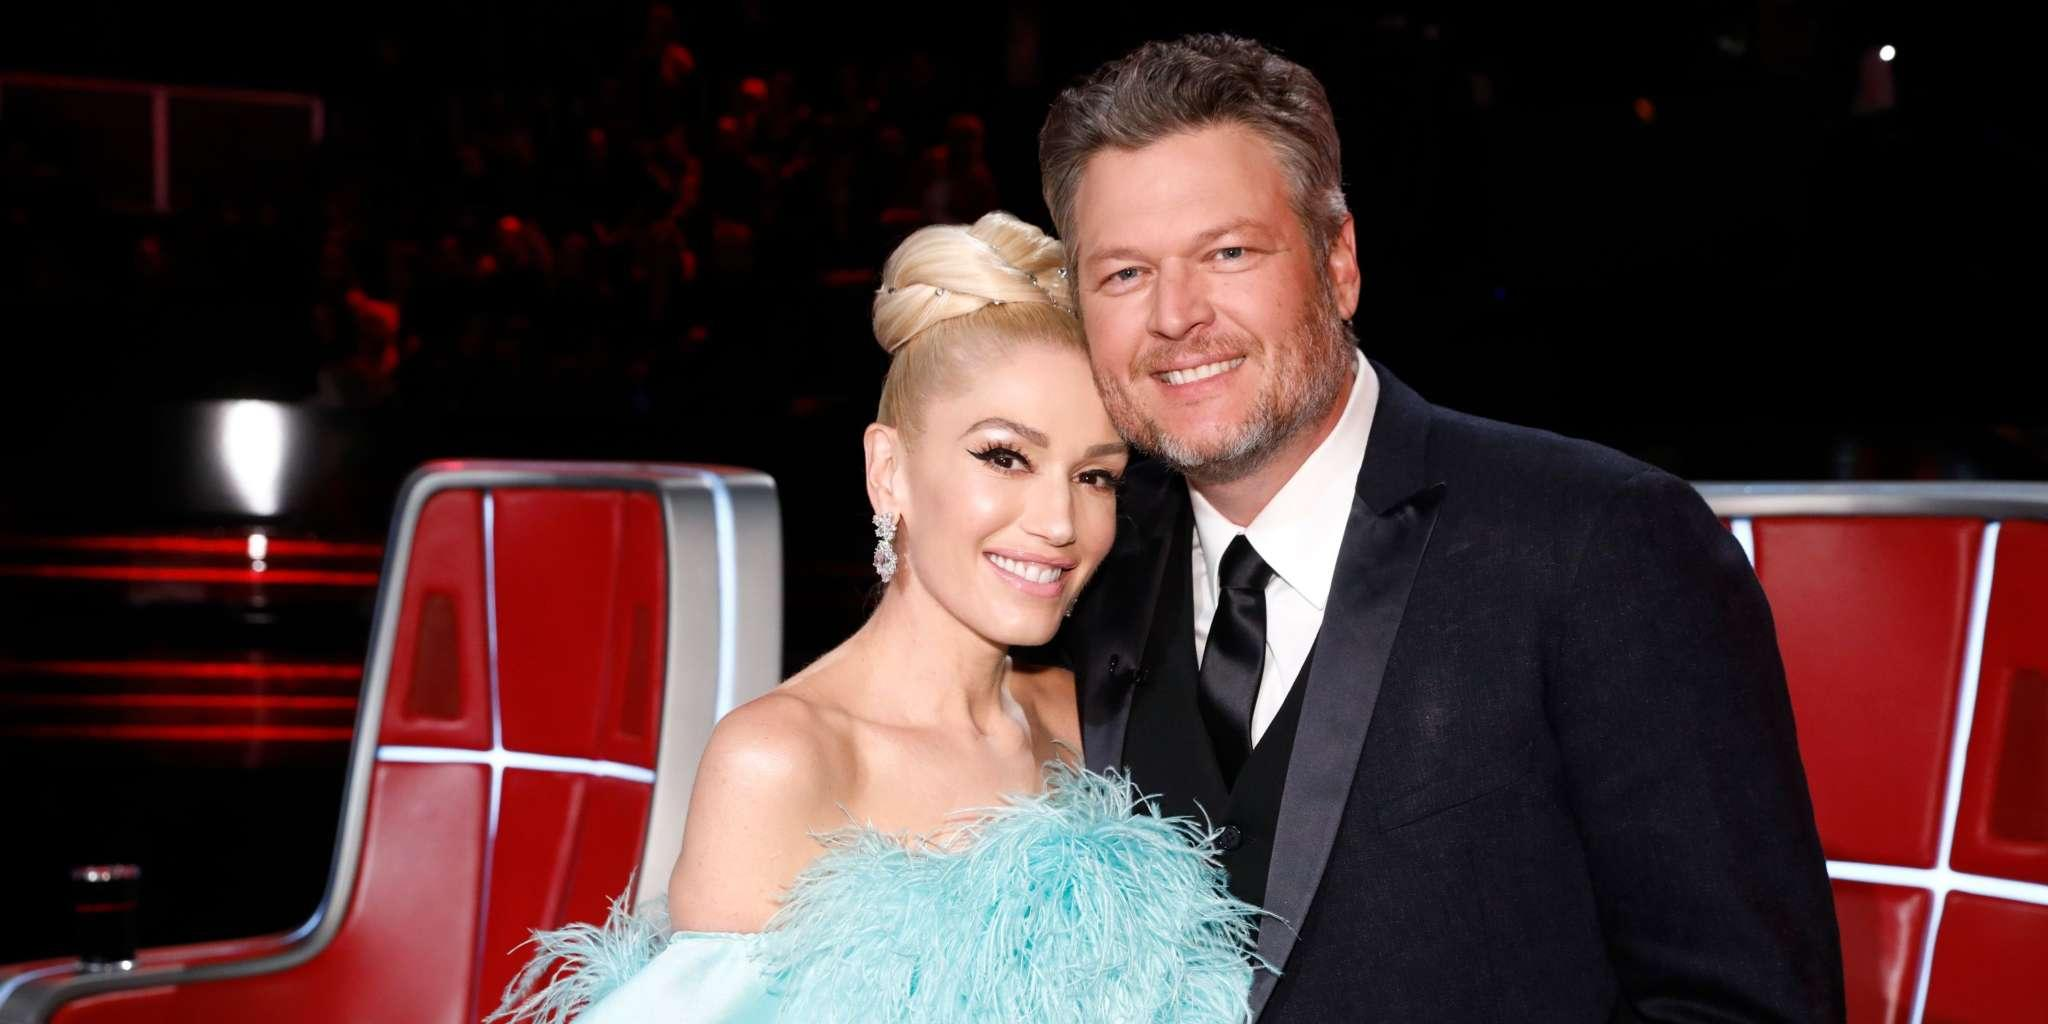 Gwen Stefani And Blake Shelton No Longer Even Mentioning Getting Engaged - Here's Why!